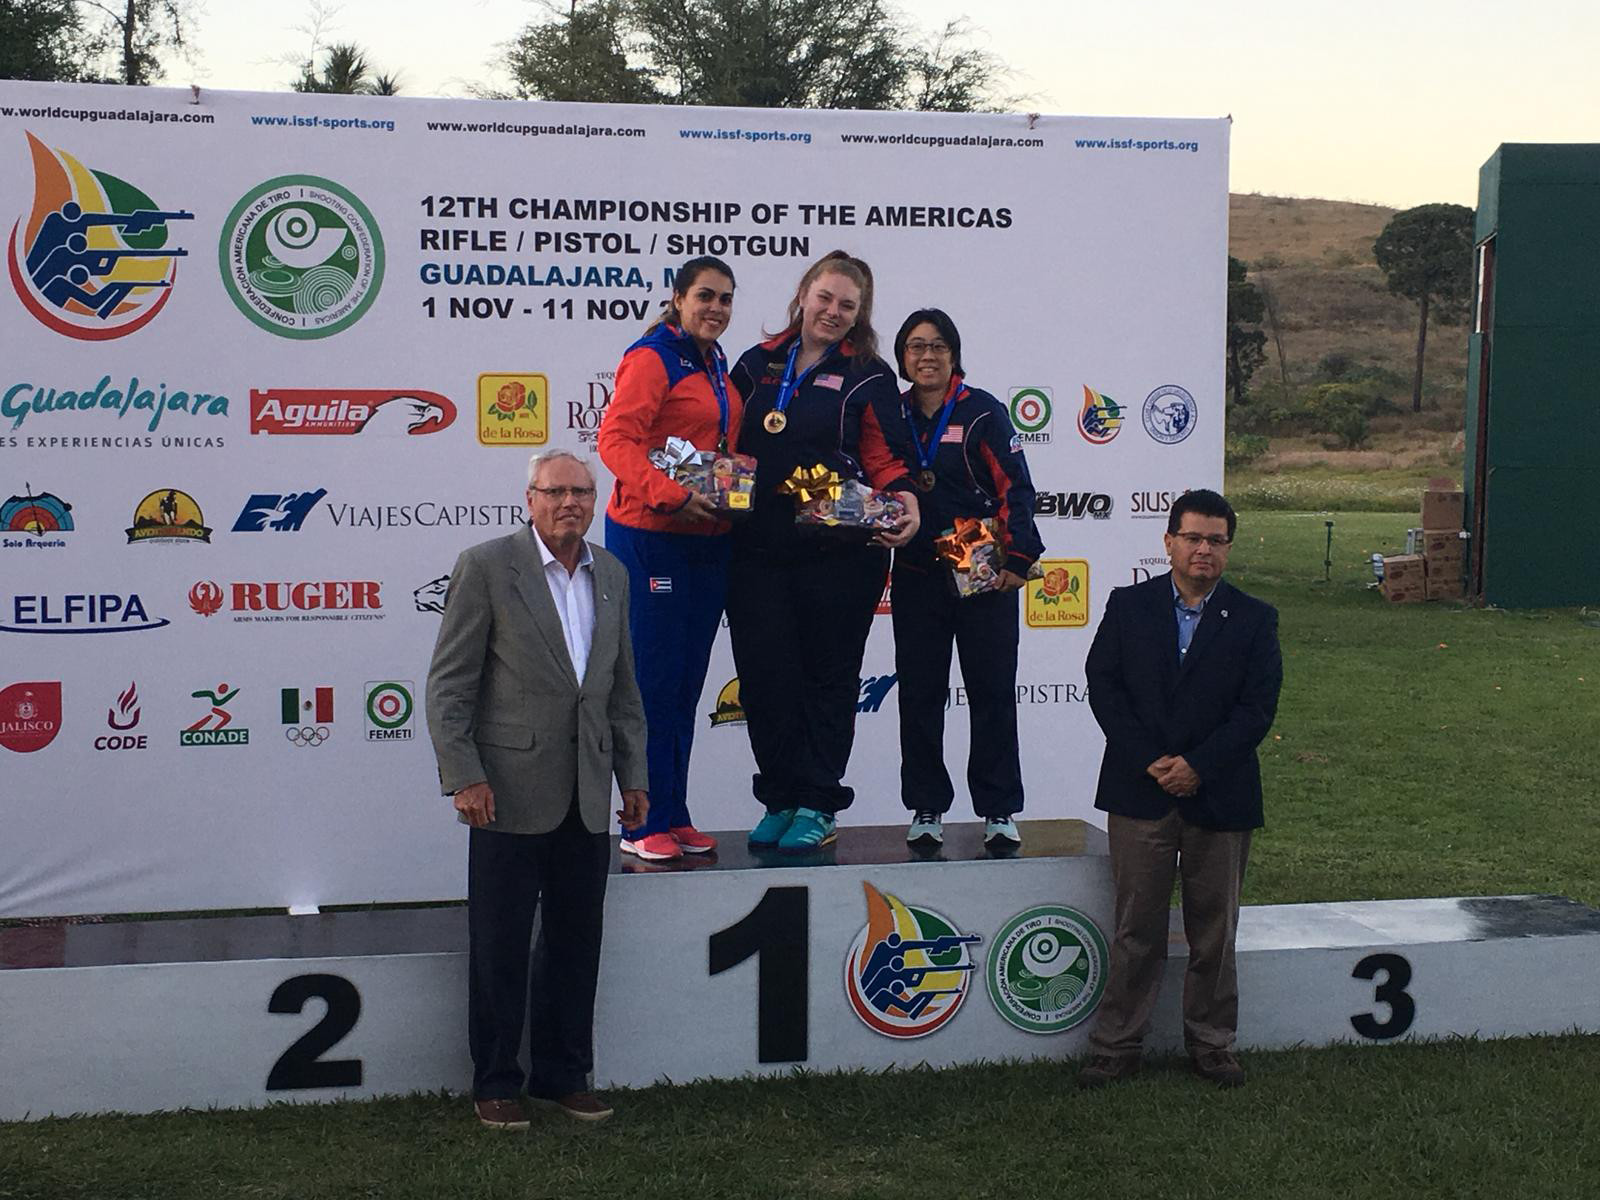 Alexis Lagan of the United States tops the podium in the women's 25 metres sport pistol at the Championship of the Americas in Mexico ©USA Shooting